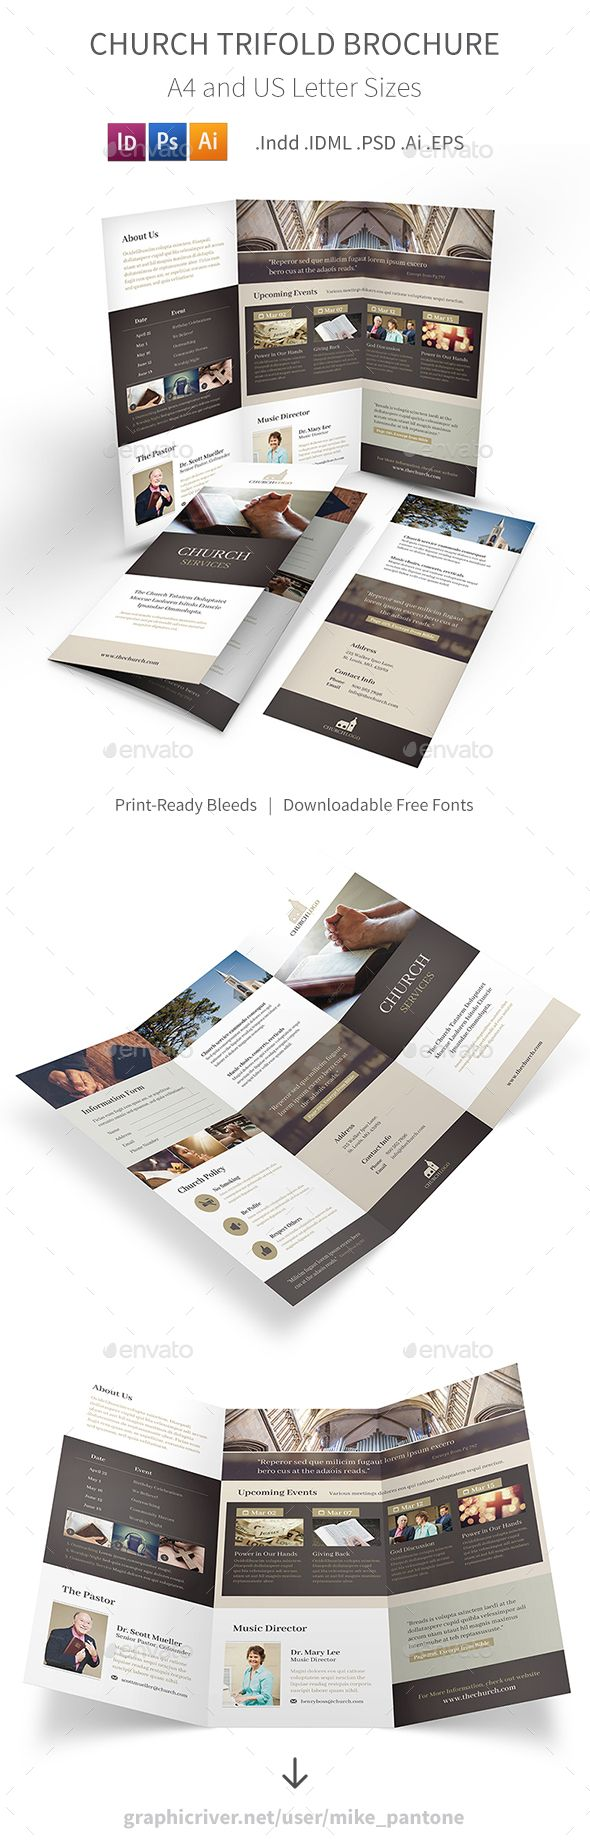 Church Trifold Brochure Template PSD, Vector EPS, InDesign INDD, AI Illustrator